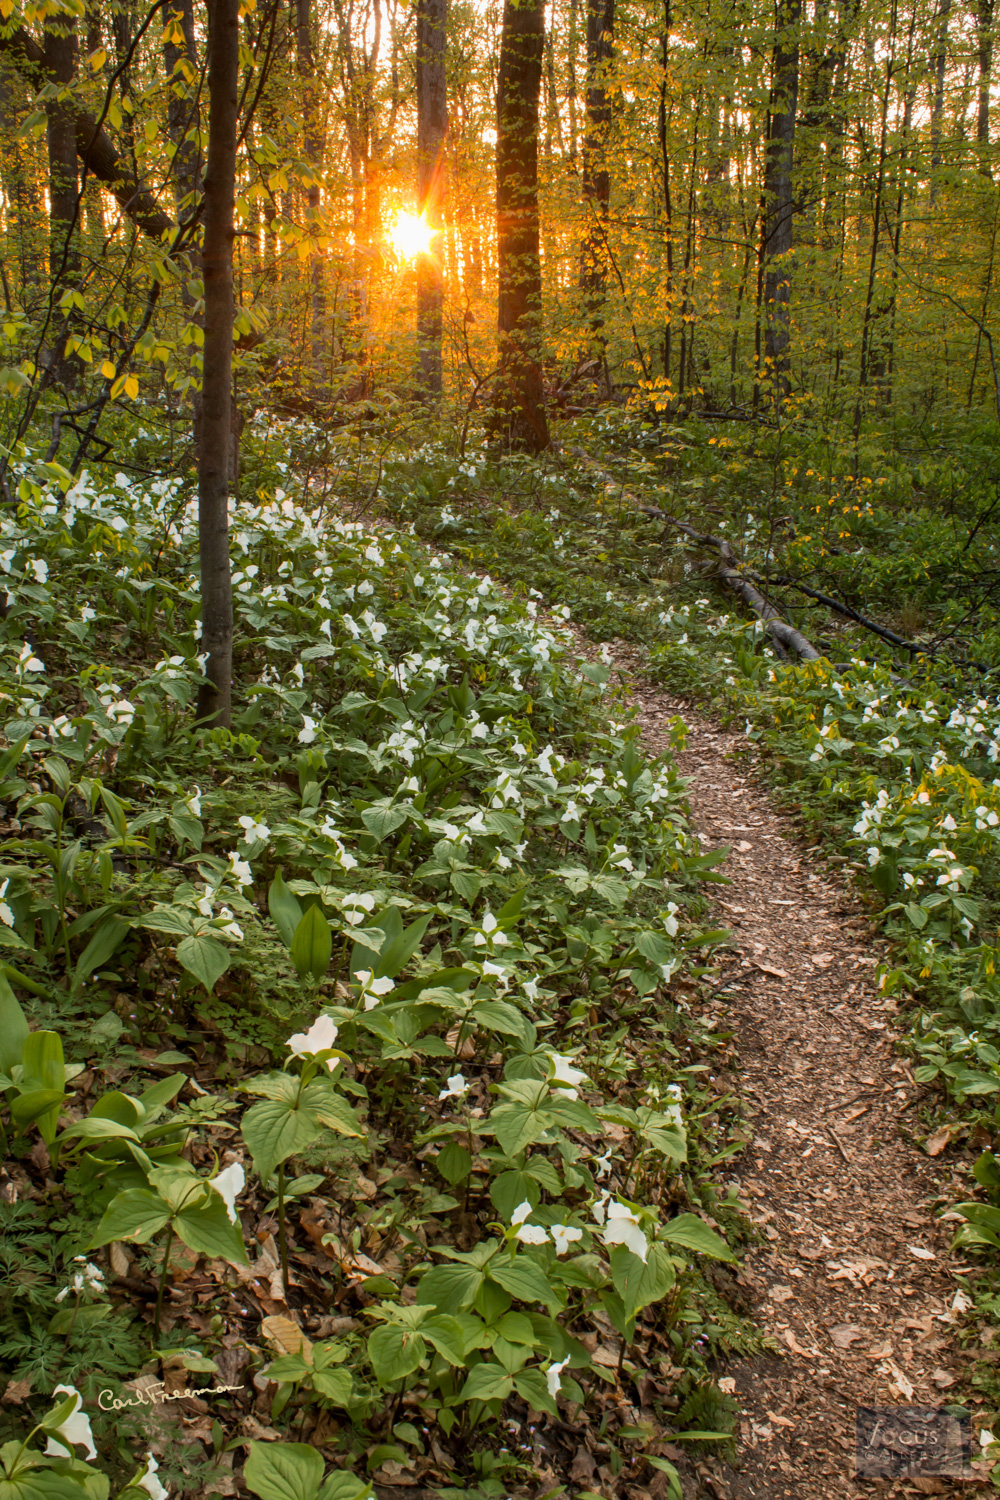 Photo © Carl Freeman Pete's Woods - Swamp Road Trailhead in Arcadia Dunes. This image was taken on land protected by the Grand...